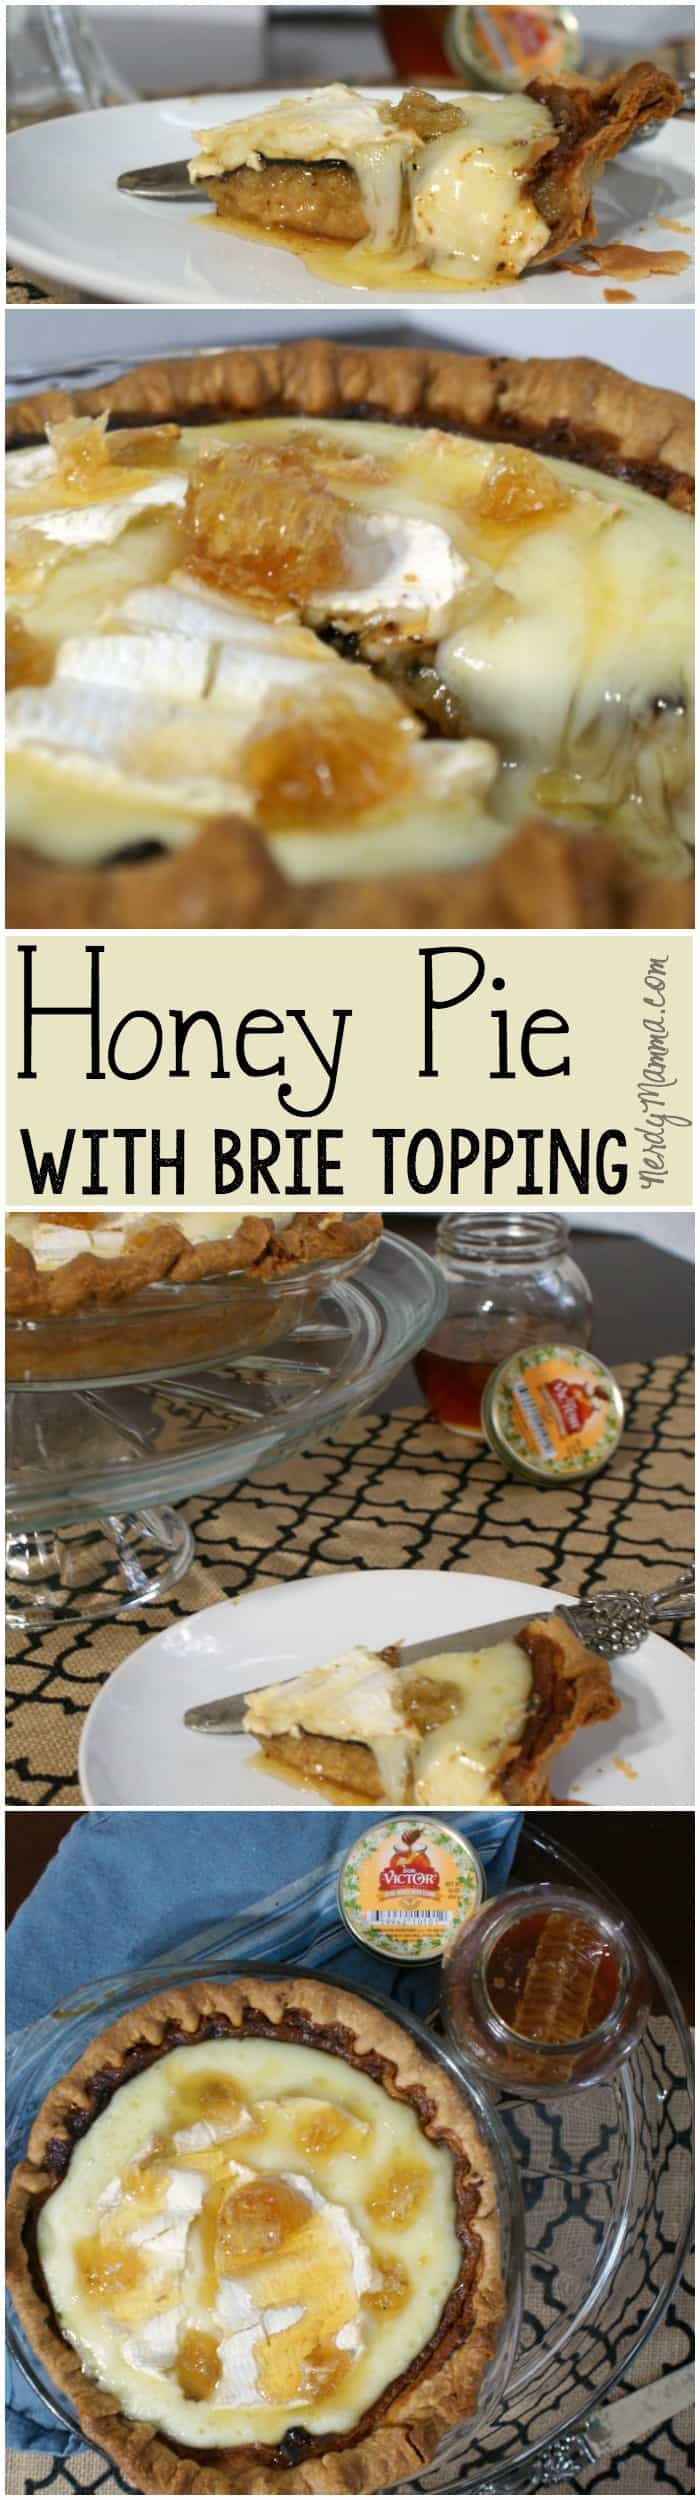 I love how yummy this Honey Pie with Brie turned out! Yummiest ever!